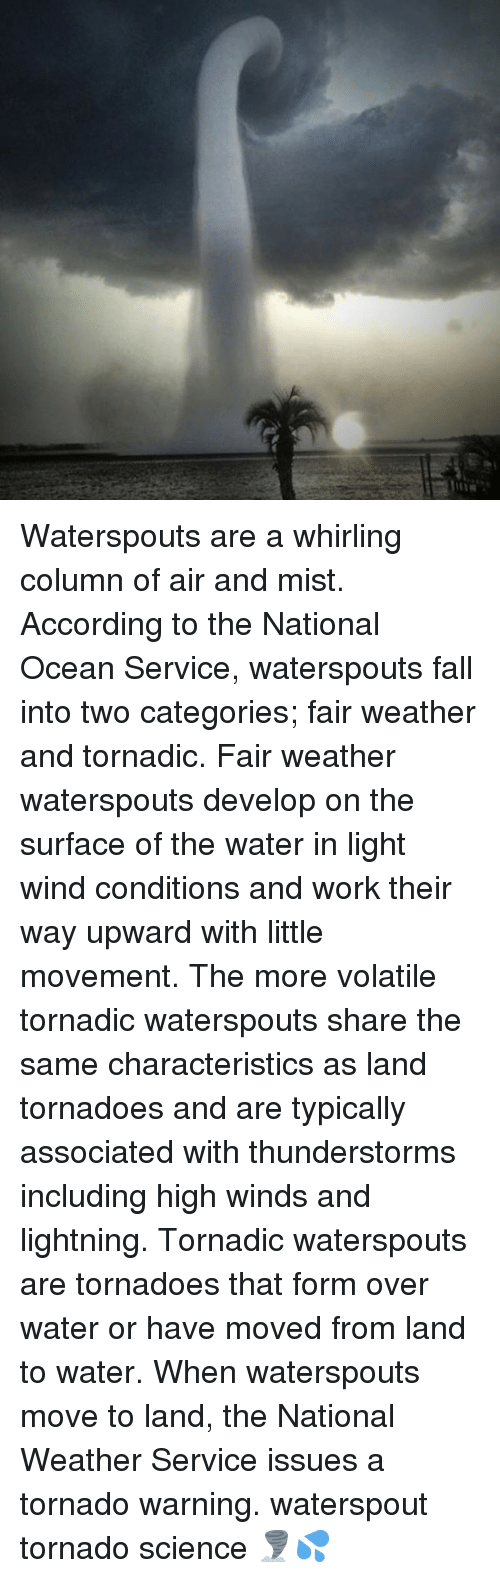 tornadoes: Waterspouts are a whirling column of air and mist. According to the National Ocean Service, waterspouts fall into two categories; fair weather and tornadic. Fair weather waterspouts develop on the surface of the water in light wind conditions and work their way upward with little movement. The more volatile tornadic waterspouts share the same characteristics as land tornadoes and are typically associated with thunderstorms including high winds and lightning. Tornadic waterspouts are tornadoes that form over water or have moved from land to water. When waterspouts move to land, the National Weather Service issues a tornado warning. waterspout tornado science 🌪💦